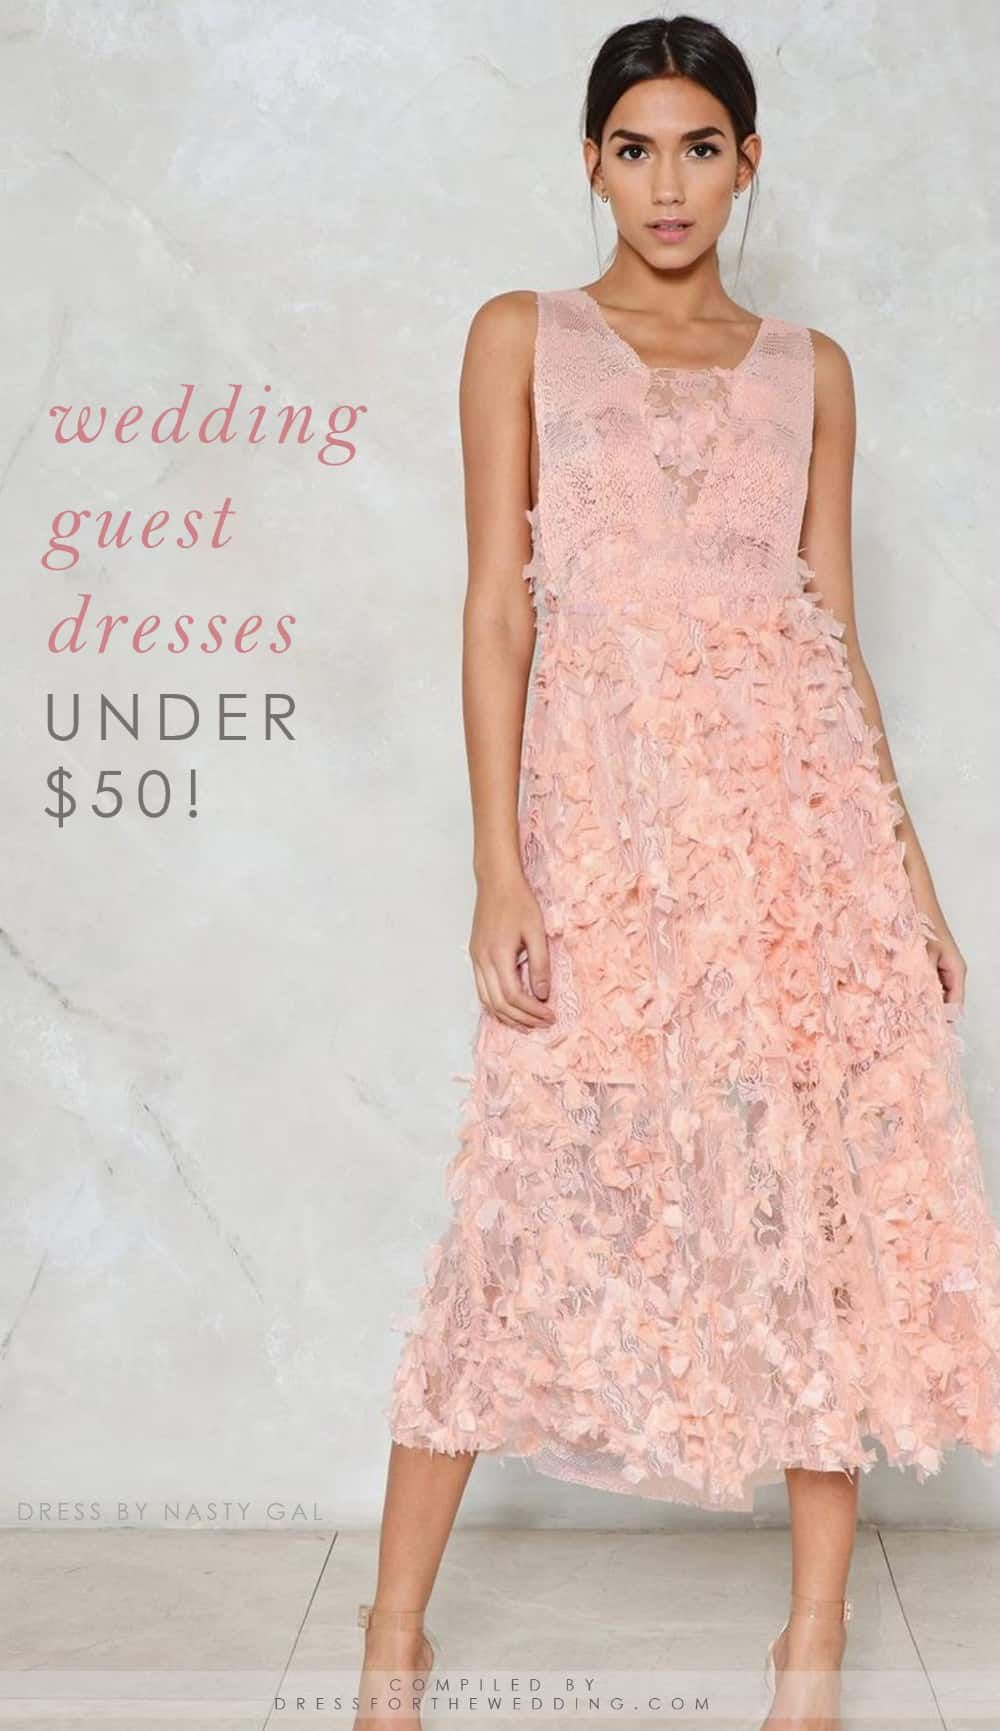 Jcpenney dresses for wedding guest  Wedding Guest Dresses Under   Wedding guest dresses Inexpensive